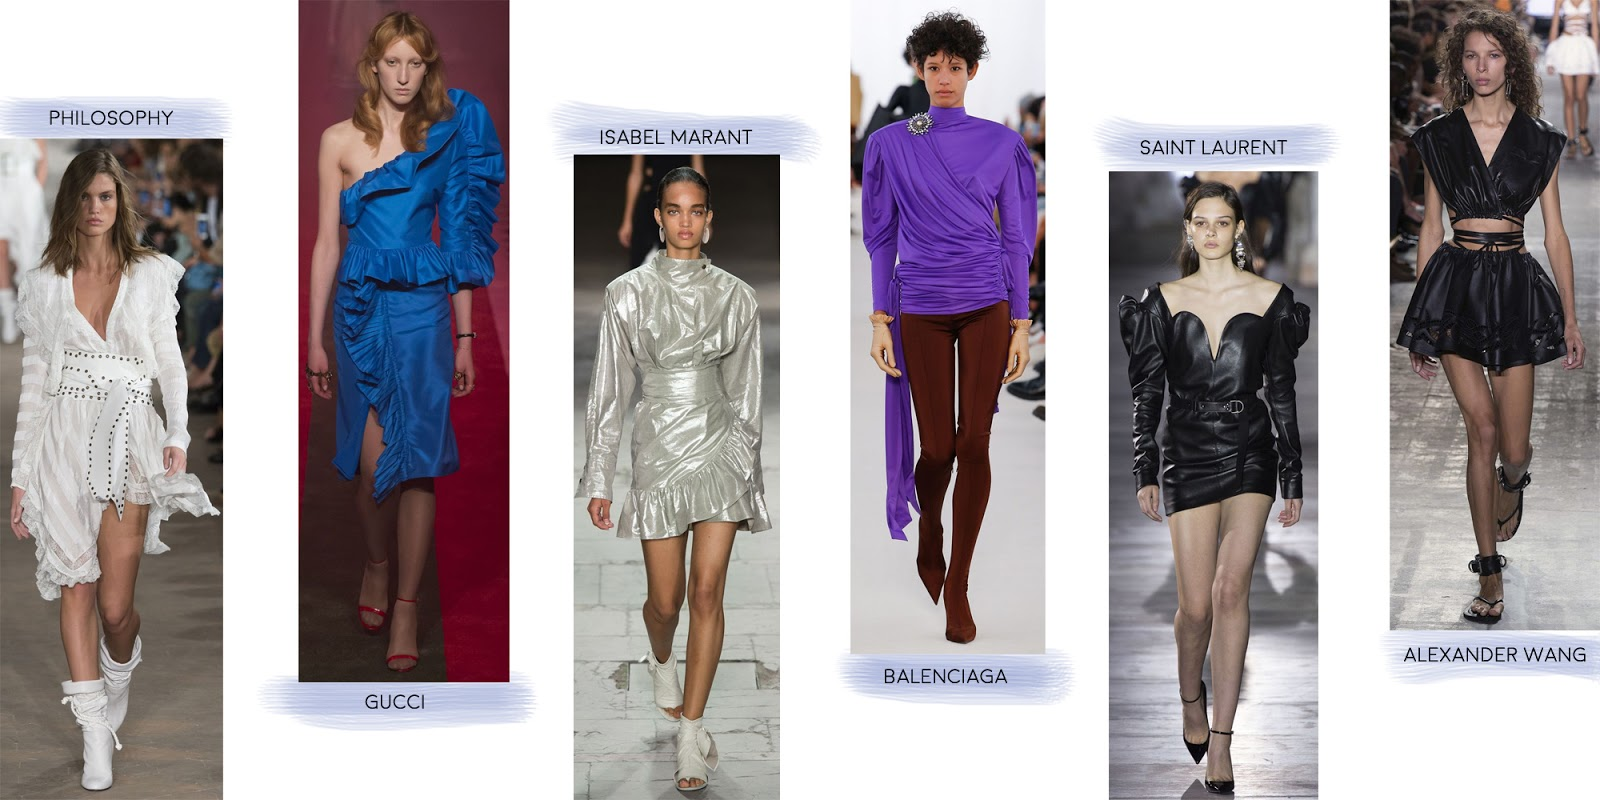 Isabel Marant, Gucci, Saint Laurent & more showing the Eighties trend